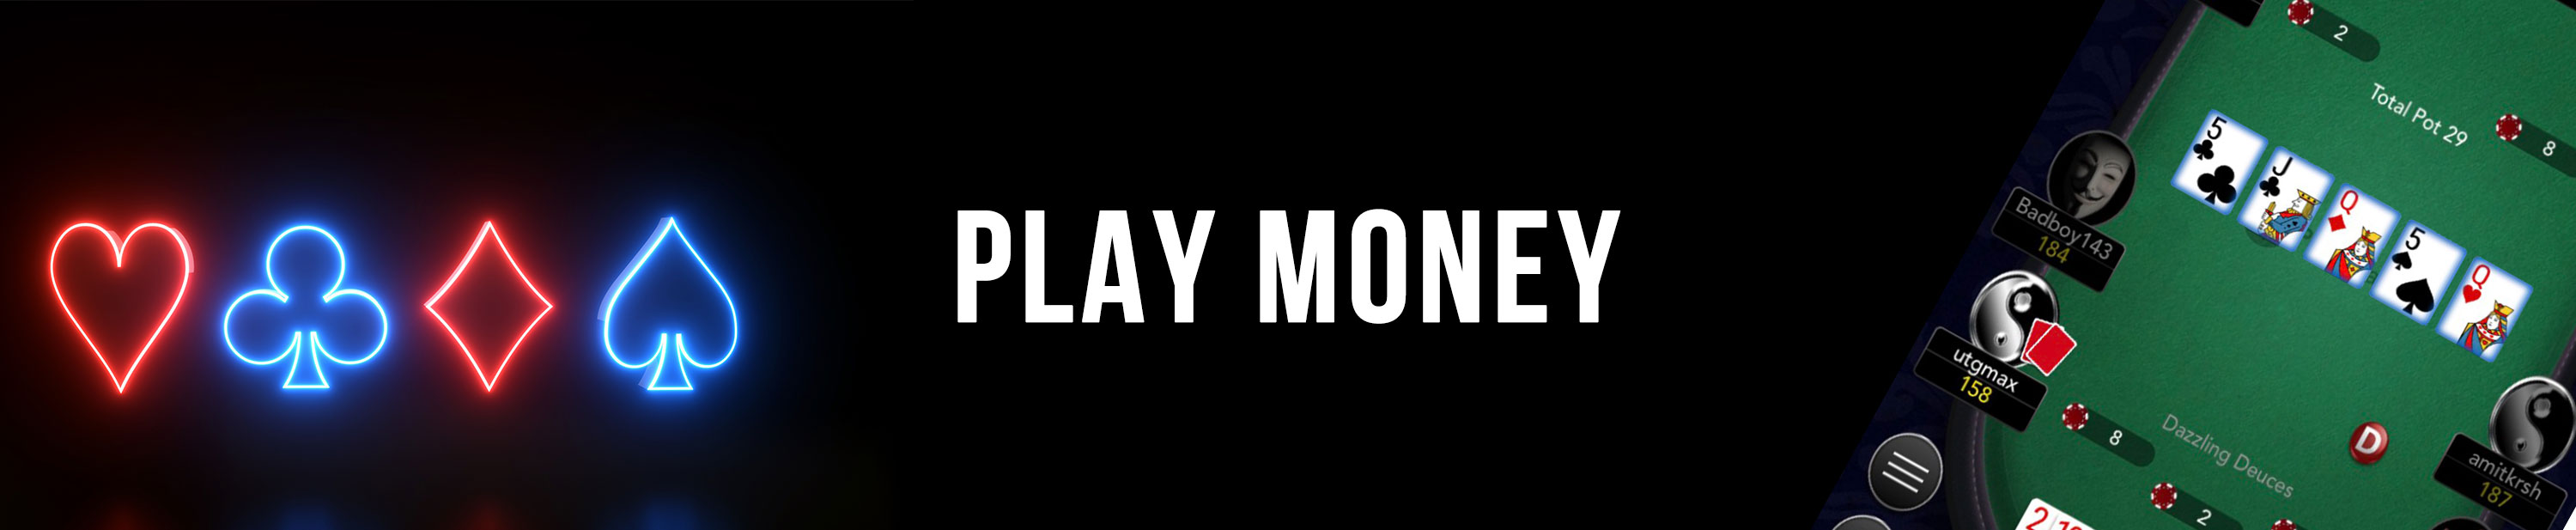 Play Money Games